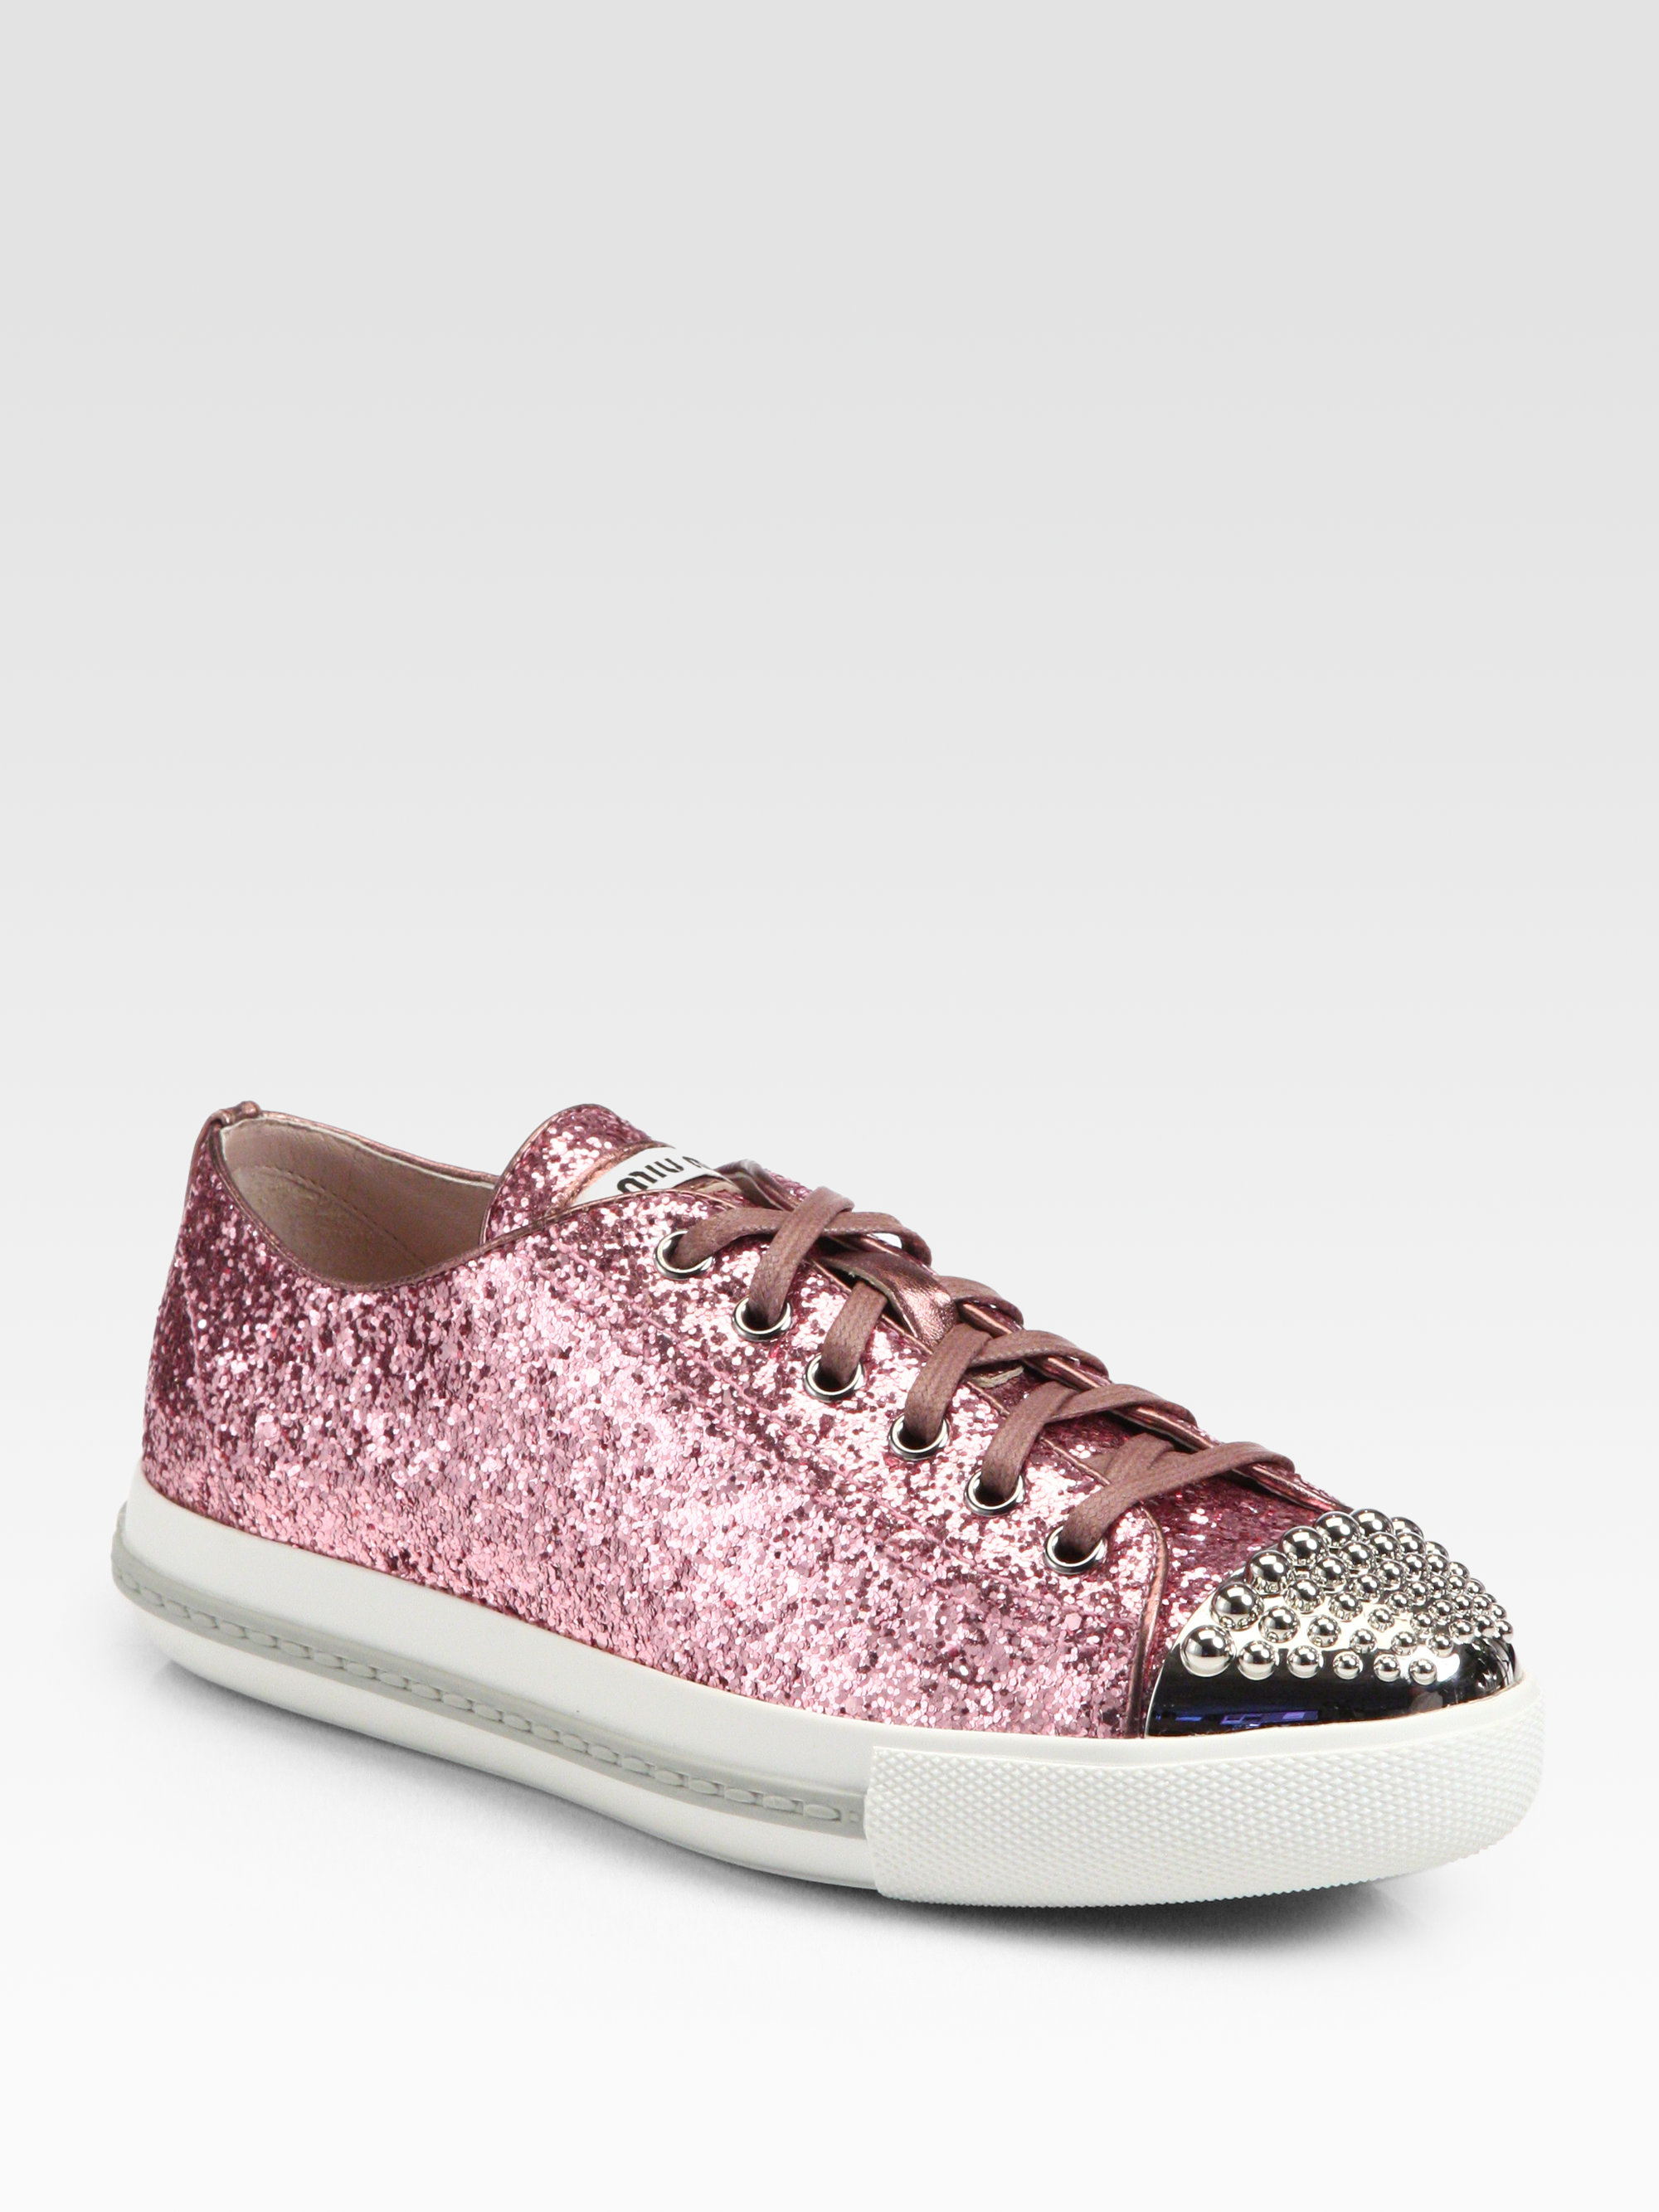 miu miu studded glitter laceup sneakers in pink lyst. Black Bedroom Furniture Sets. Home Design Ideas